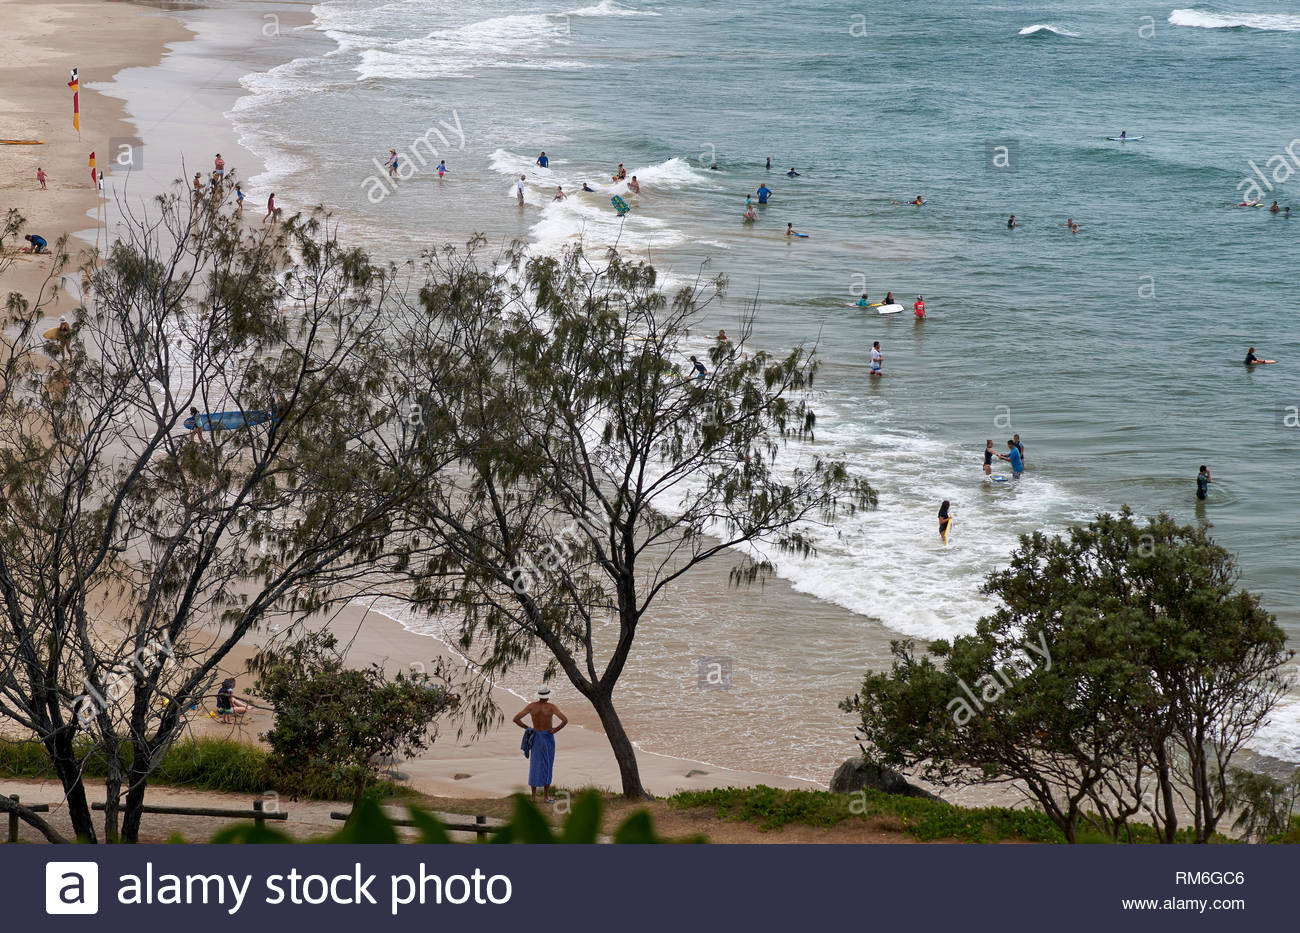 Lots of people cooling off in the water - swimming at Turners Beach - during a hot day of the Australian summer in 2019; at Yamba, NSW, Australia. - Stock Image